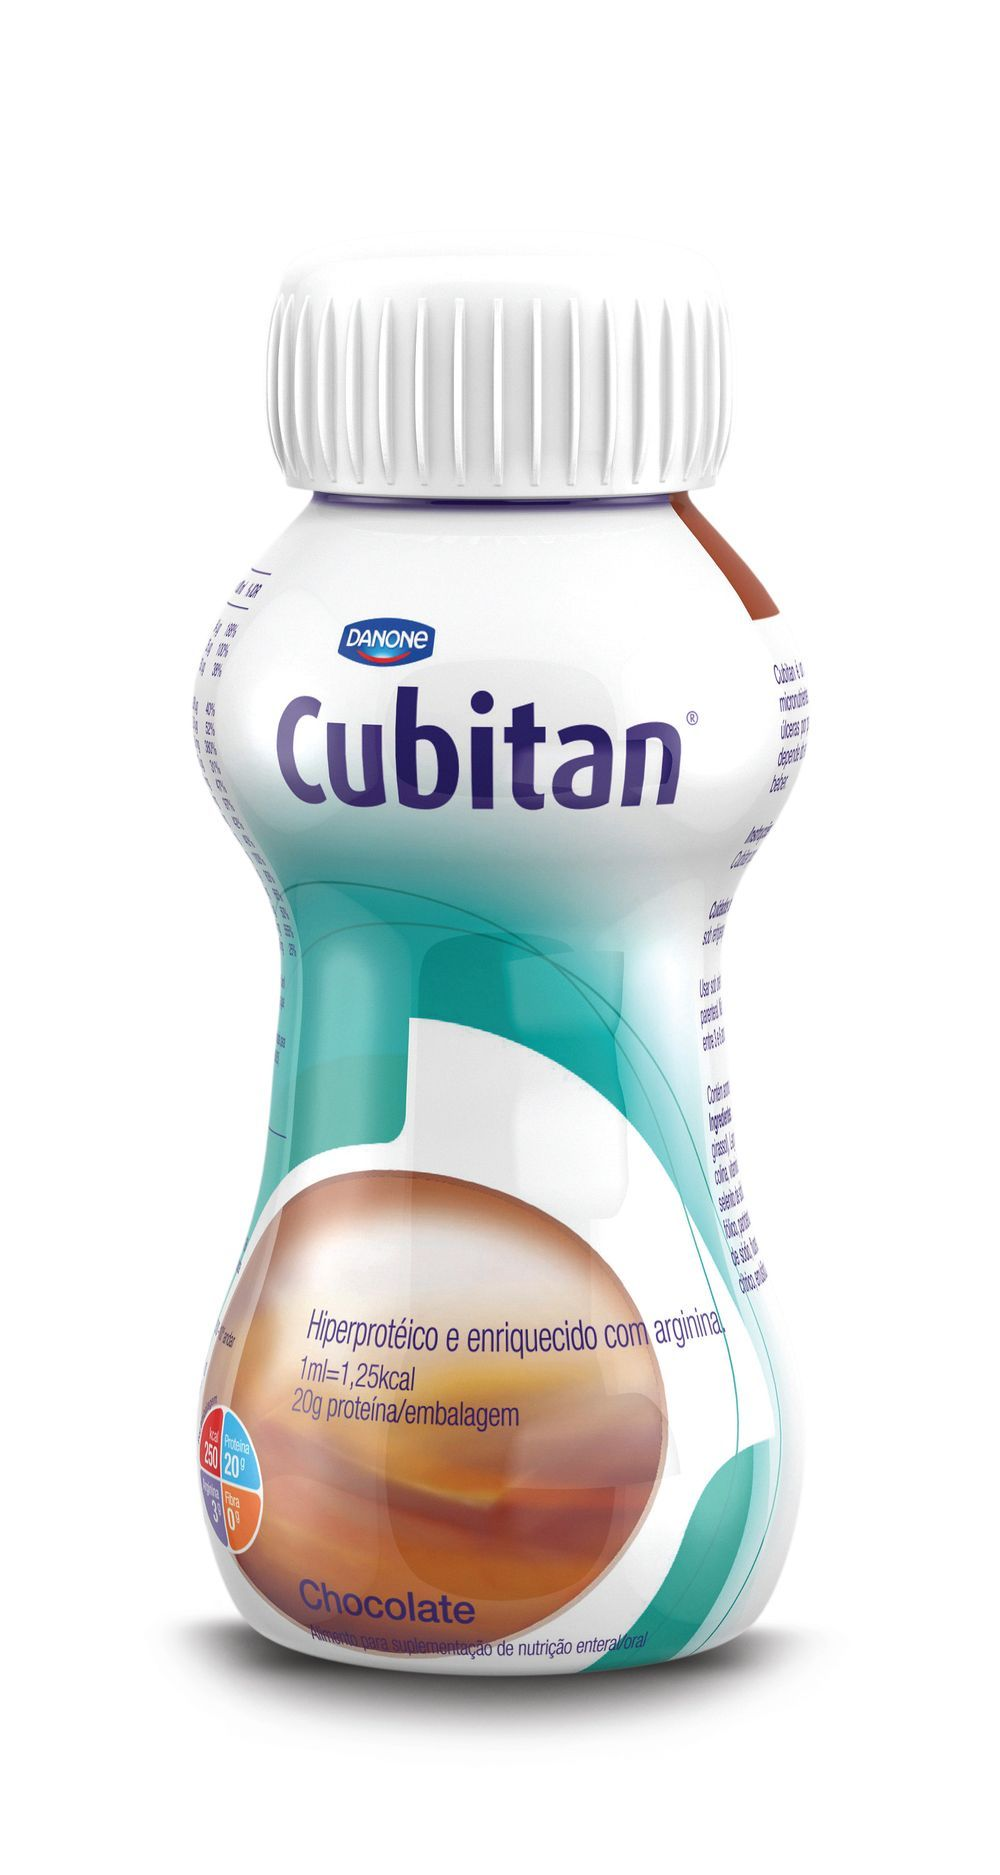 Cubitan Chocolate - 200mL - (Danone)